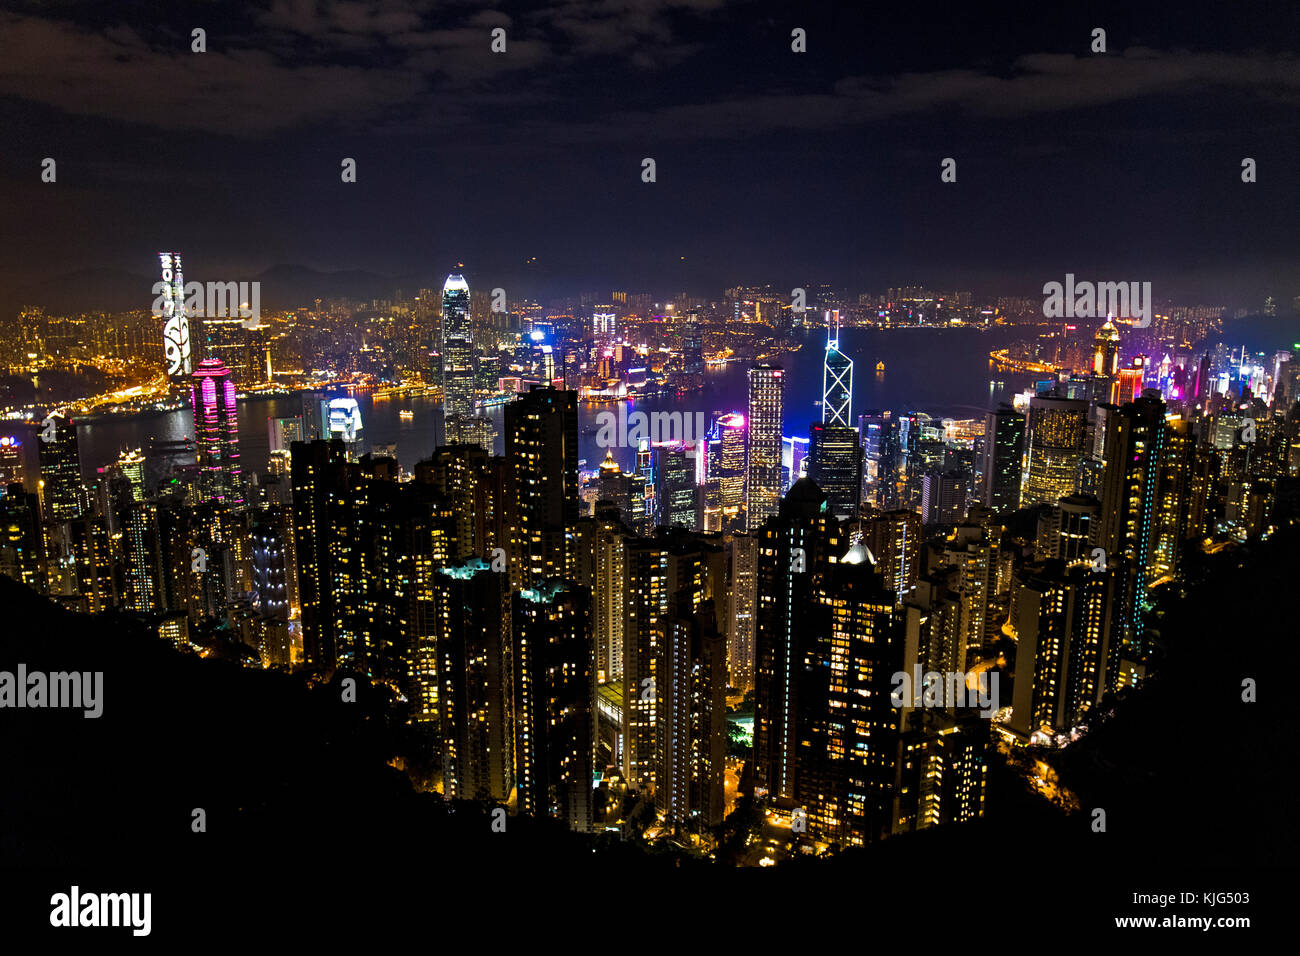 The photo was taken at The Peak, which is one of the landmarks in Hong Kong. The photo was taken with professional - Stock Image